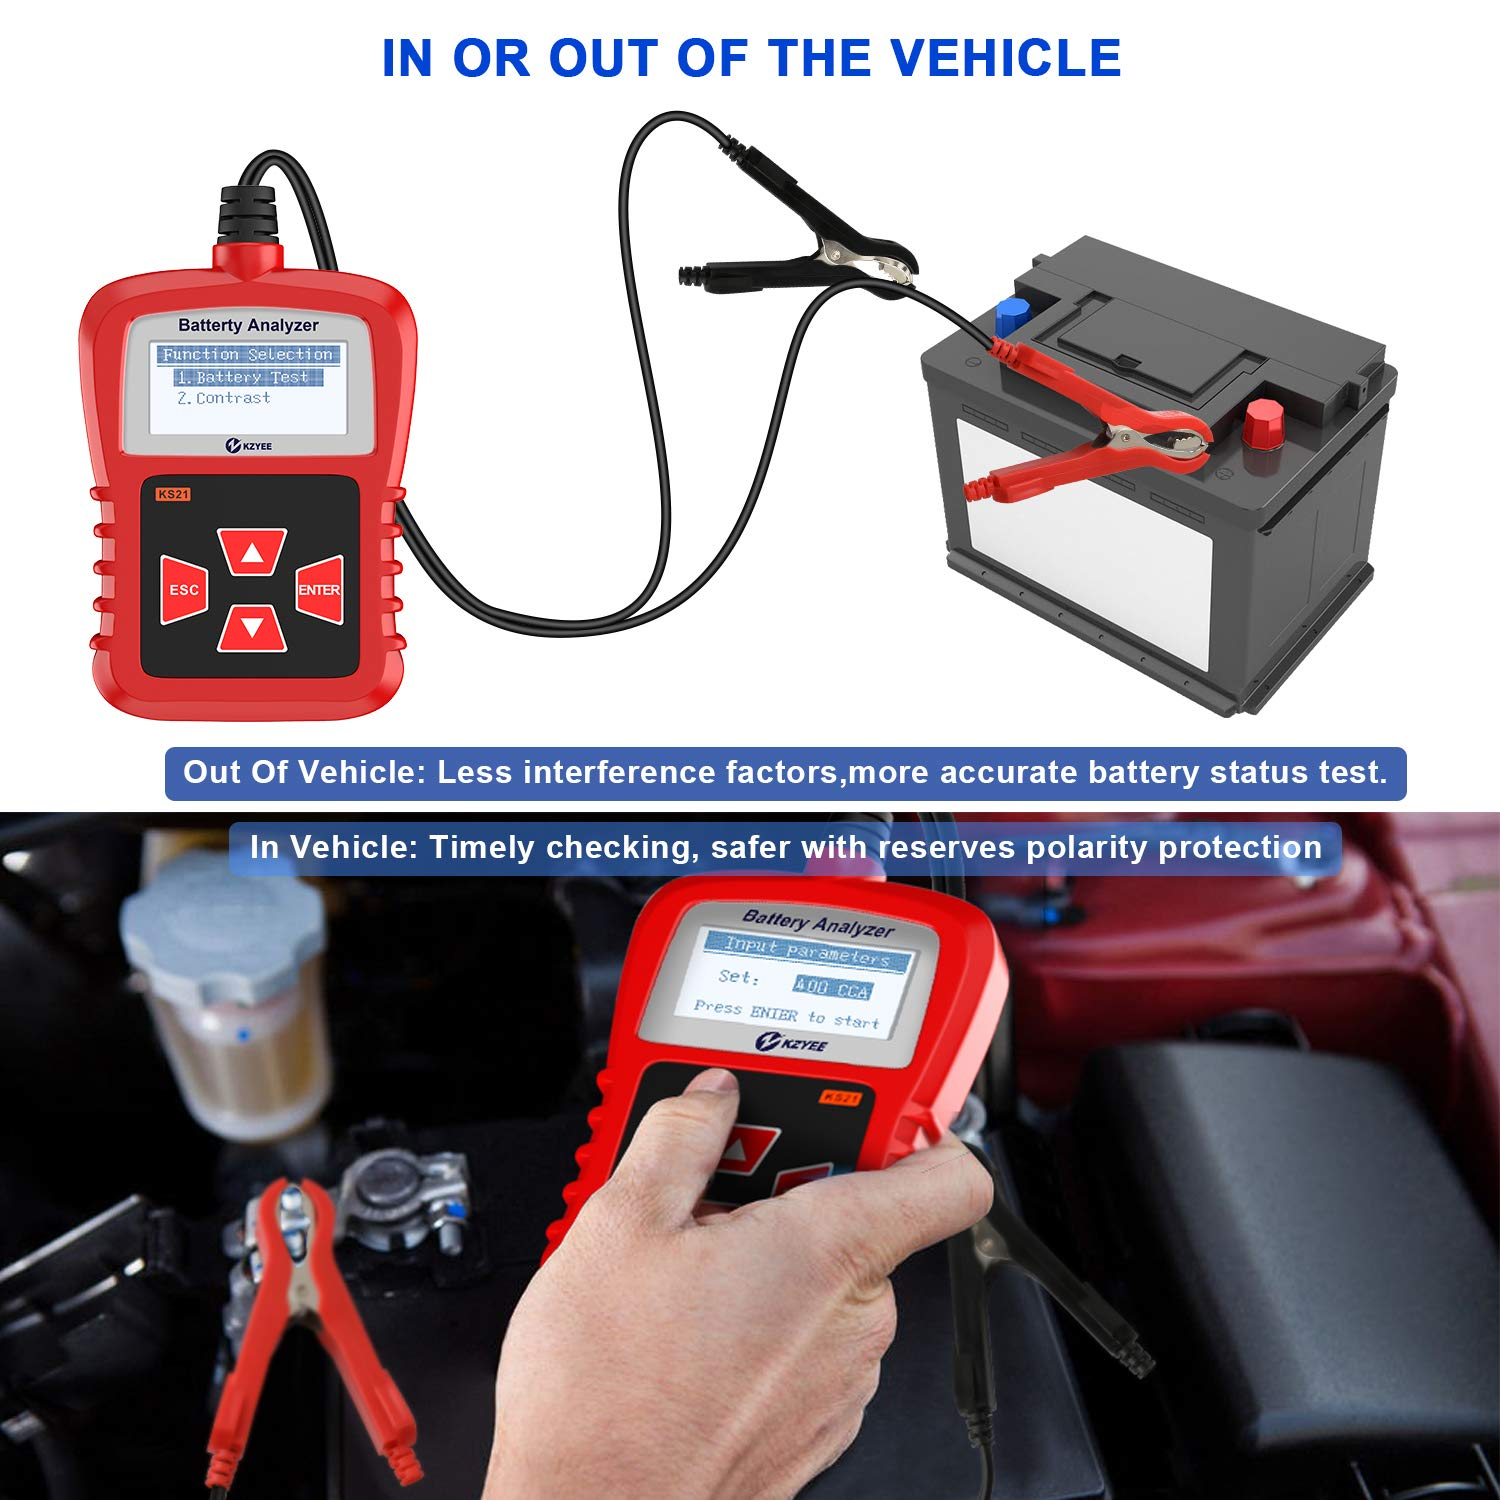 Kzyee KS21 Car Battery Tester, Automotive 100-1700 CCA 12V Battery Load Tester Cranking and Charging System Diagnostic Tool Digital Battery Analyzer by Kzyee (Image #3)